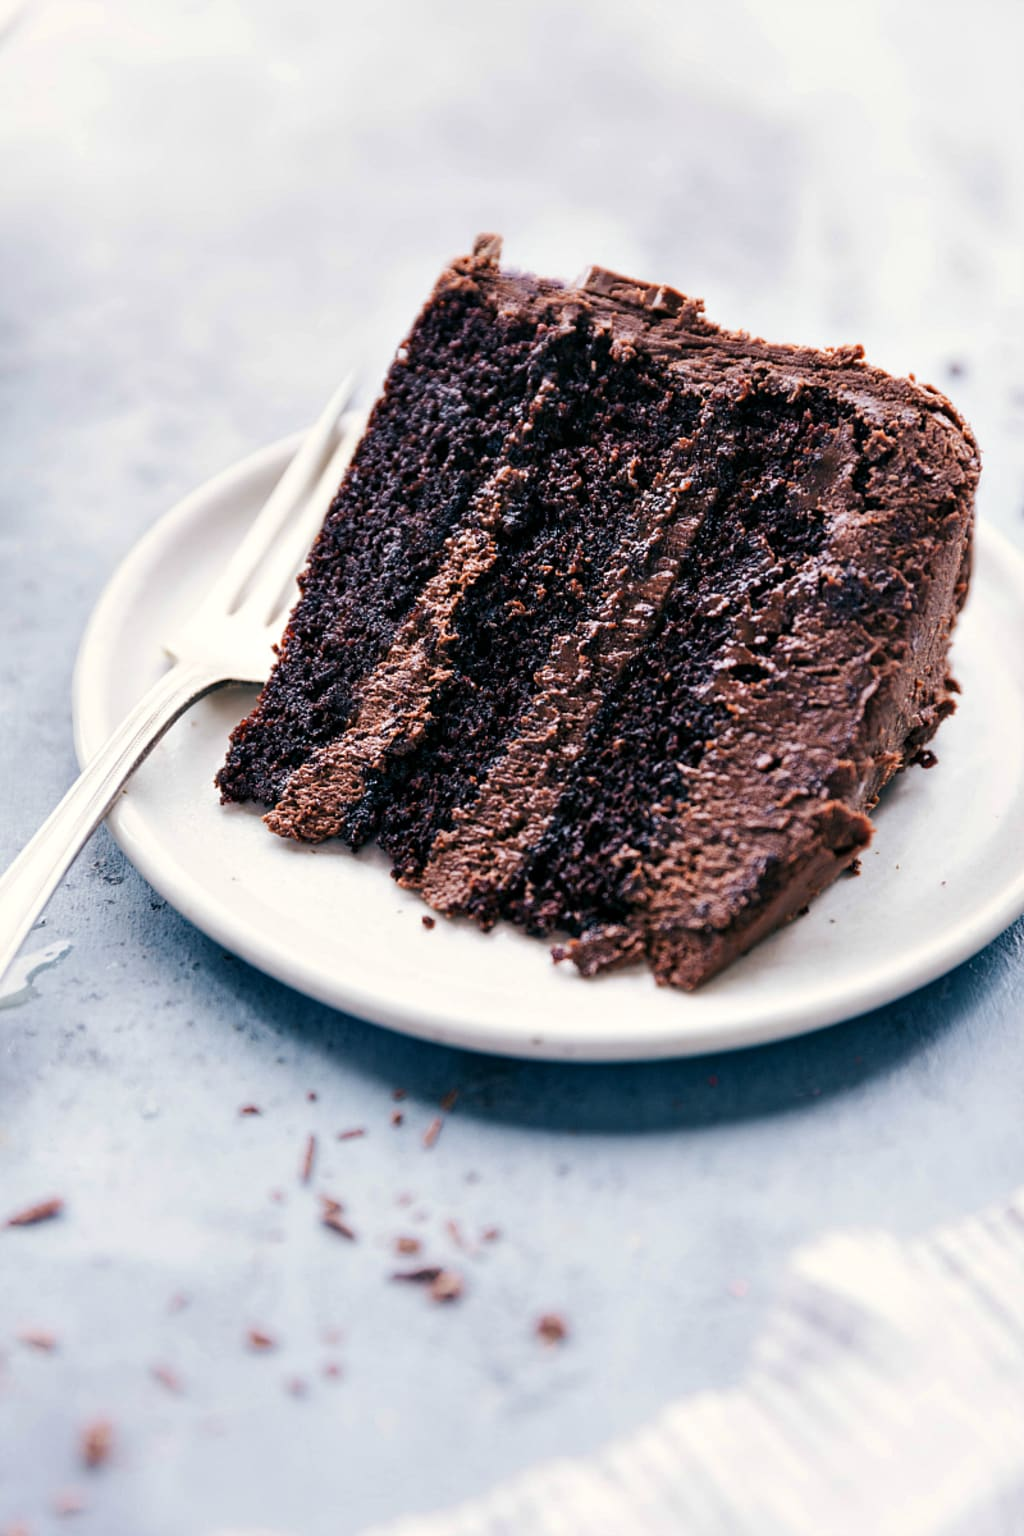 The Price of A Slice of Cake